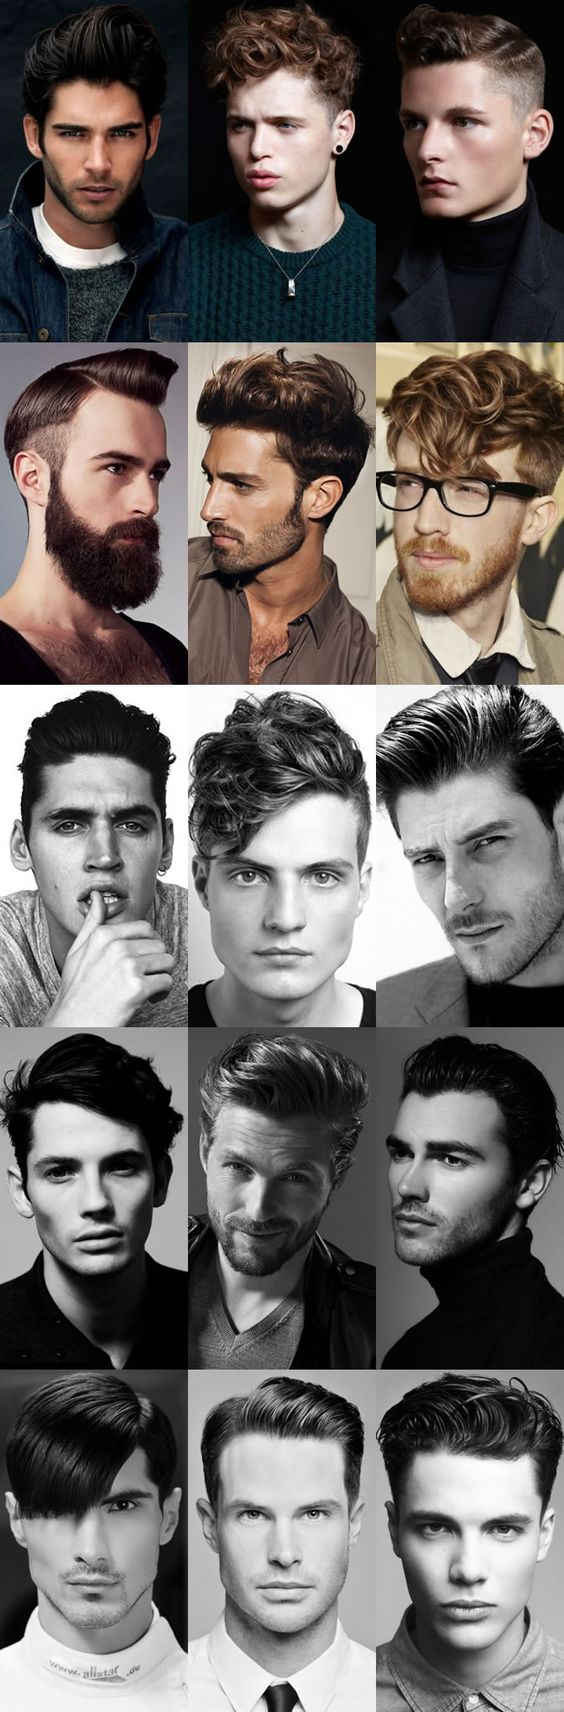 Normal mens haircut  best images about coiffure on pinterest  hair hairstyles and